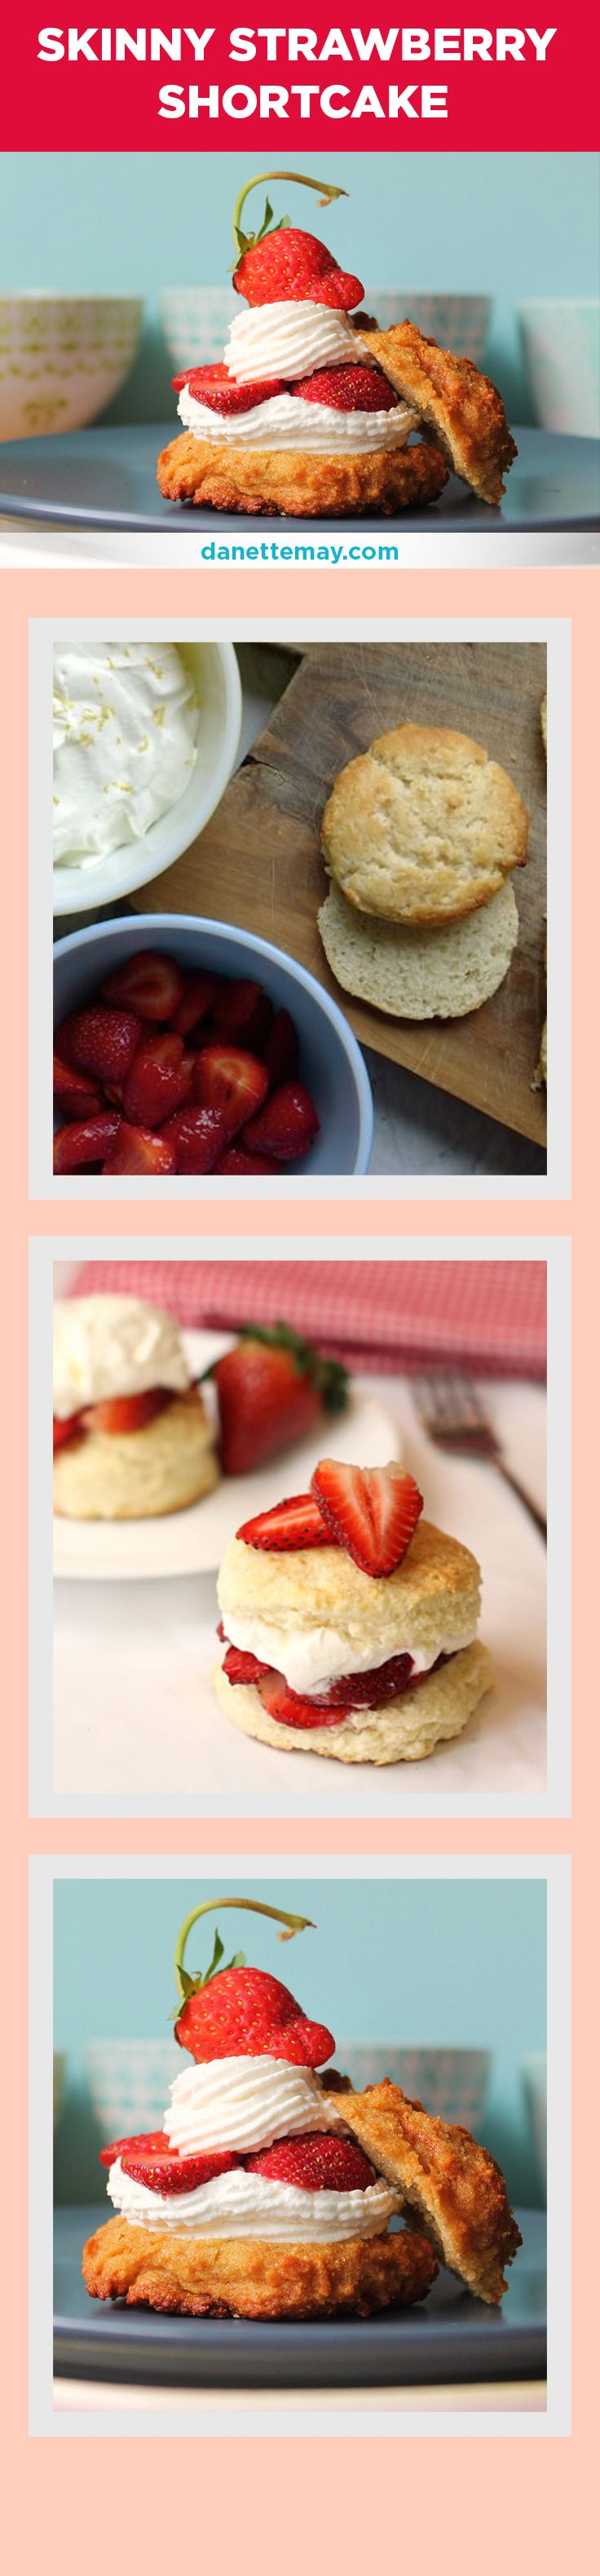 This Skinny Strawberry Shortcake recipe is just in time for strawberry season! (new recipe)  If you want more super quick, super healthy and super yummy recipes like this you should grab my Bikini Body Recipes Book here -> http://www.eatdrinkshrinkplan.com/bikini-body-recipes-offer/index.html